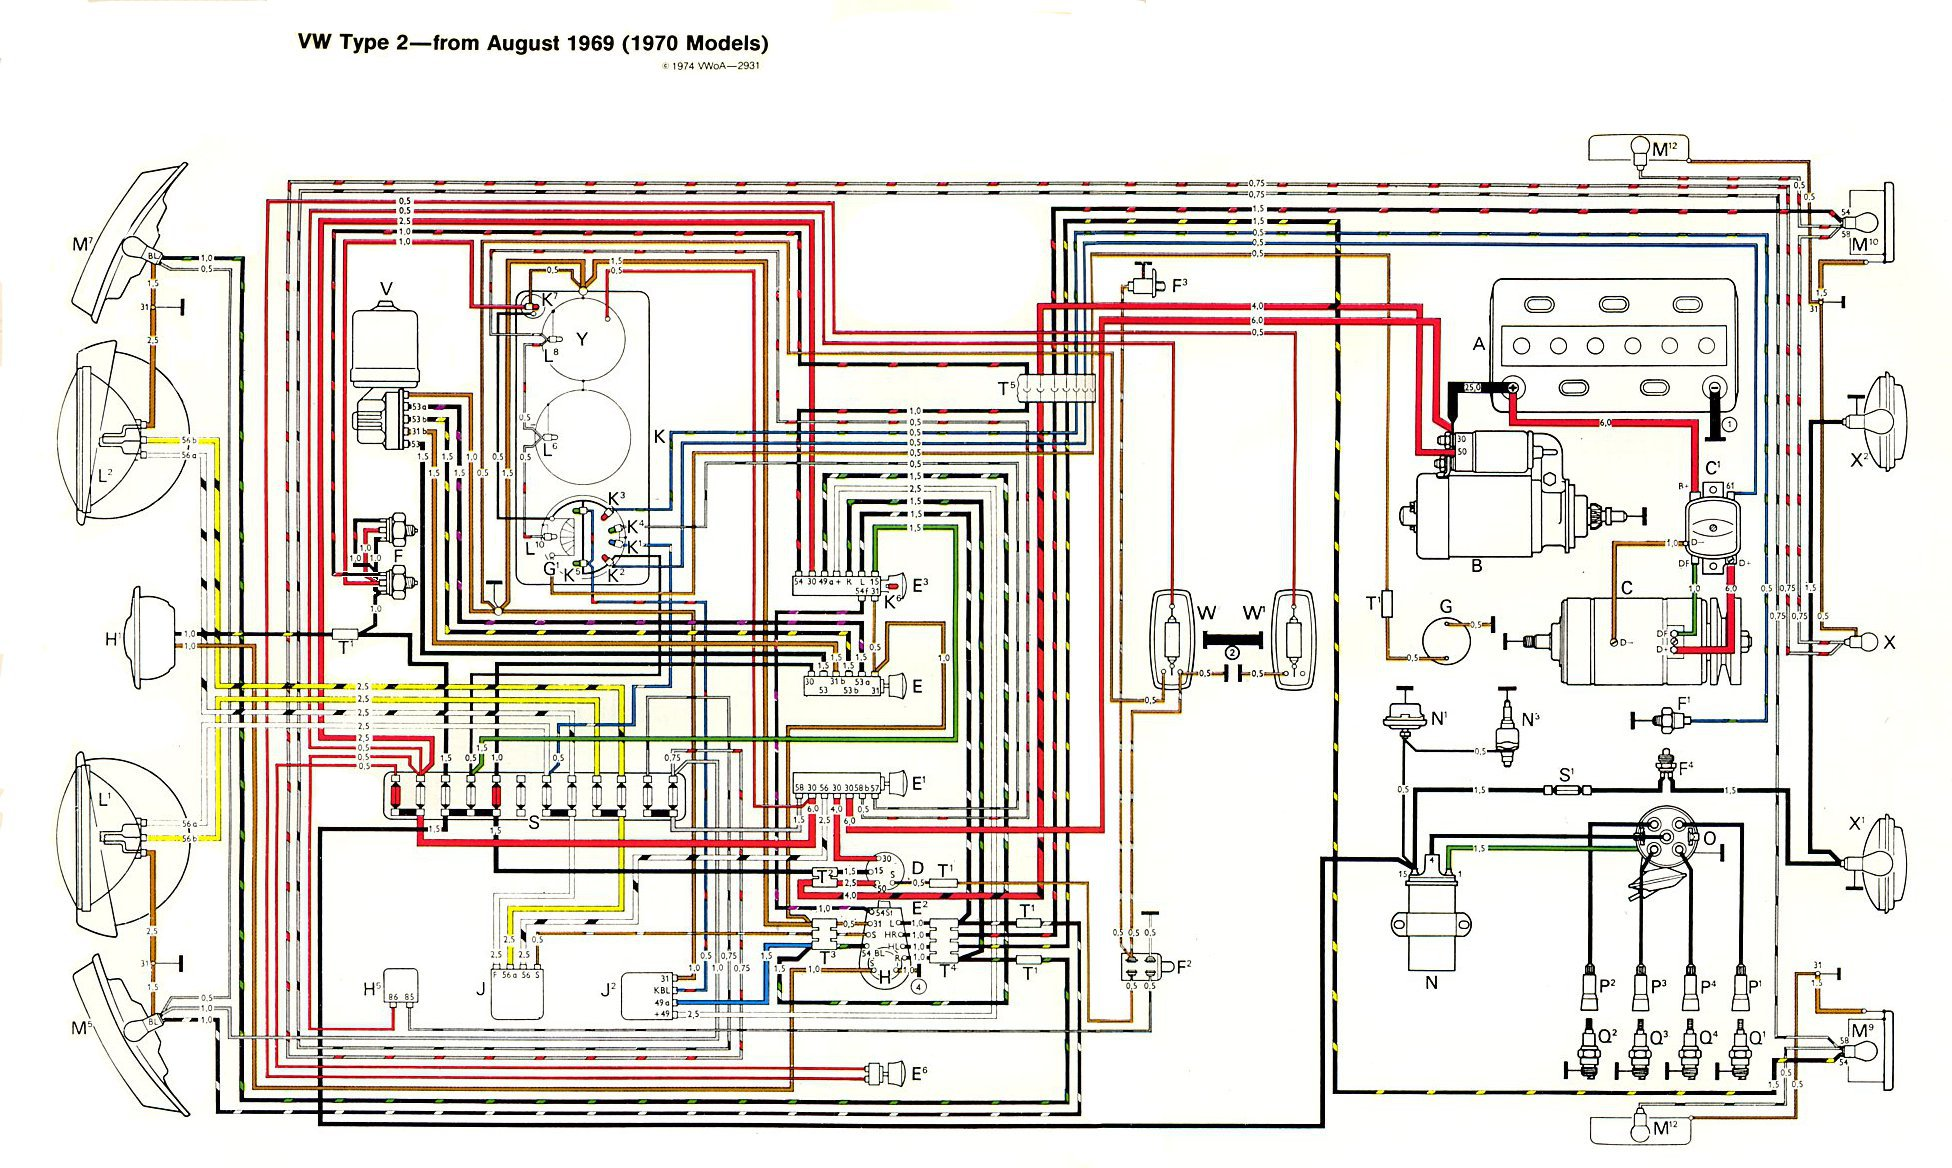 baybus_70 thesamba com type 2 wiring diagrams 1970 vw bug wiring diagram at arjmand.co